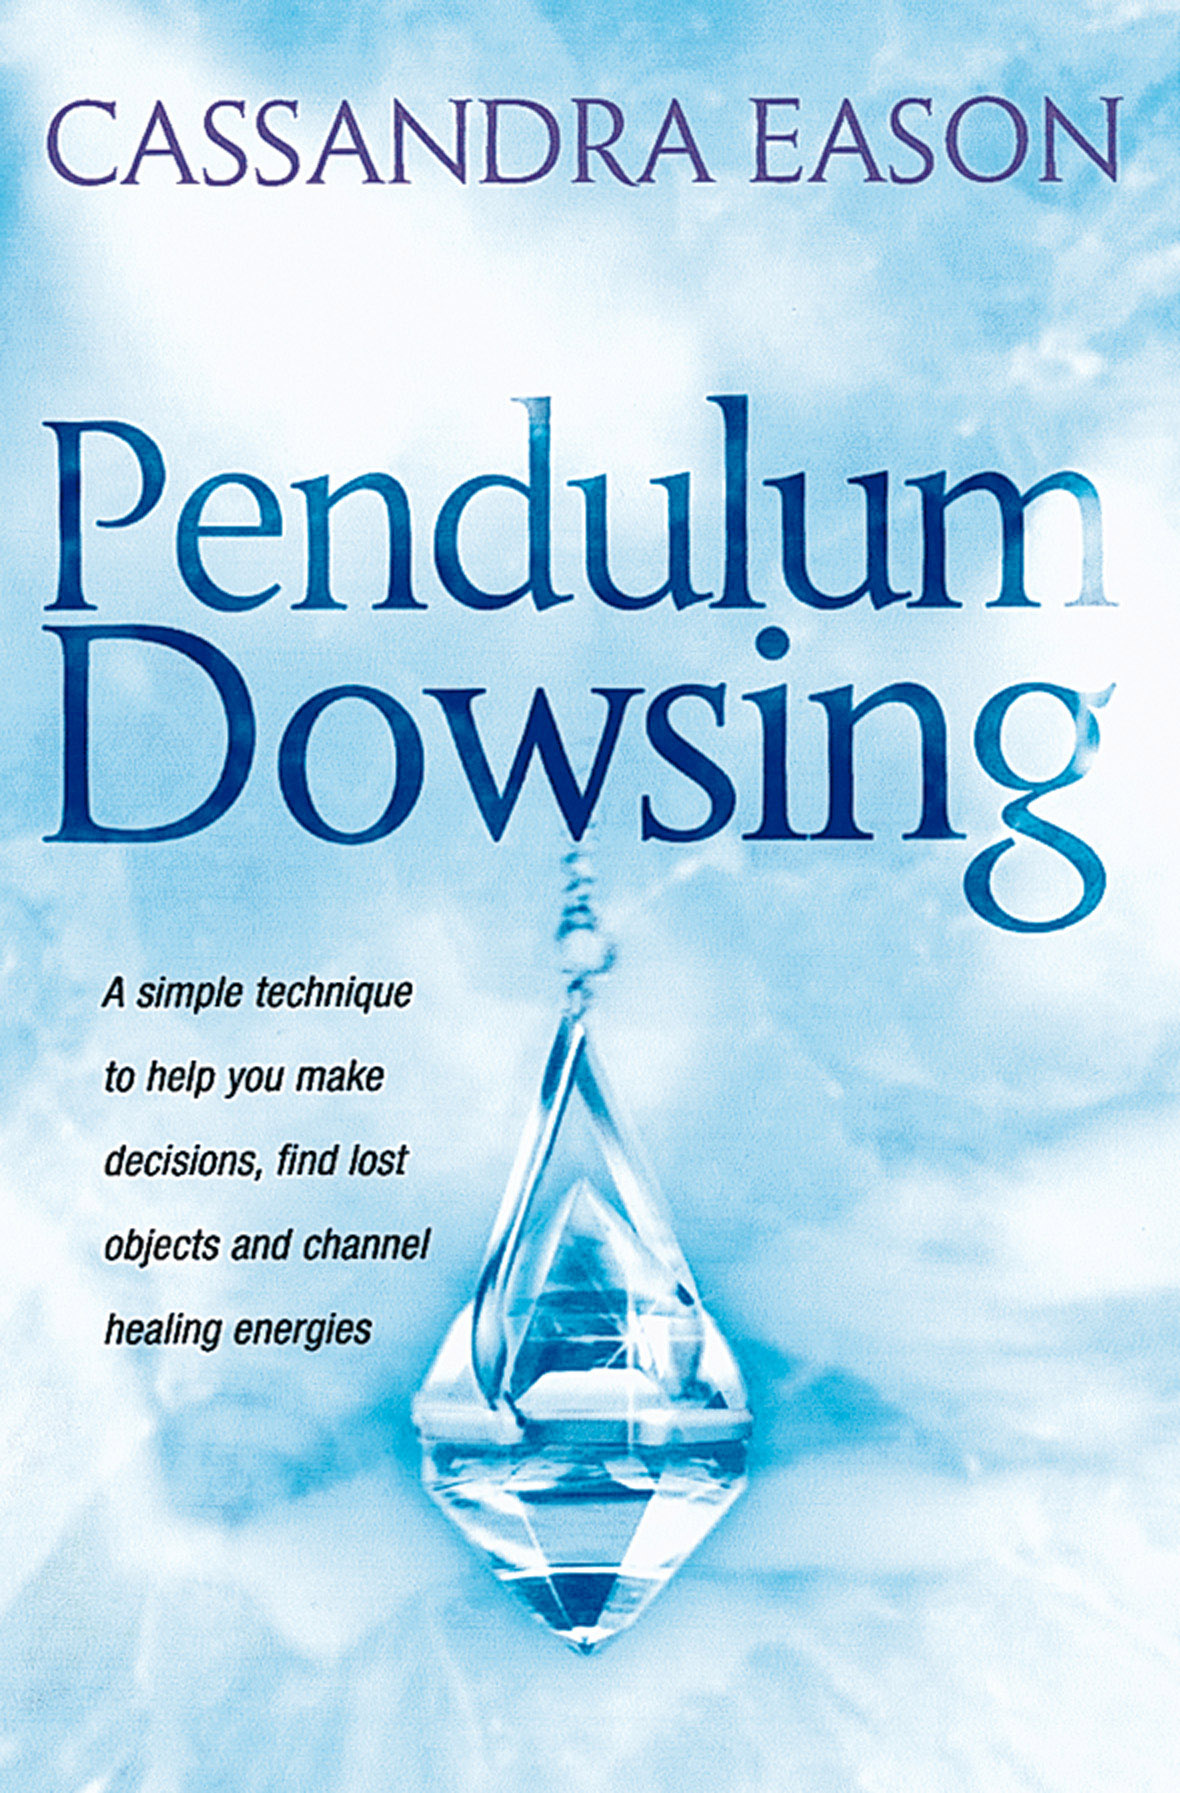 Pendulum Dowsing: A simple technique to help you make decisions, find lost objects and channel healing energies